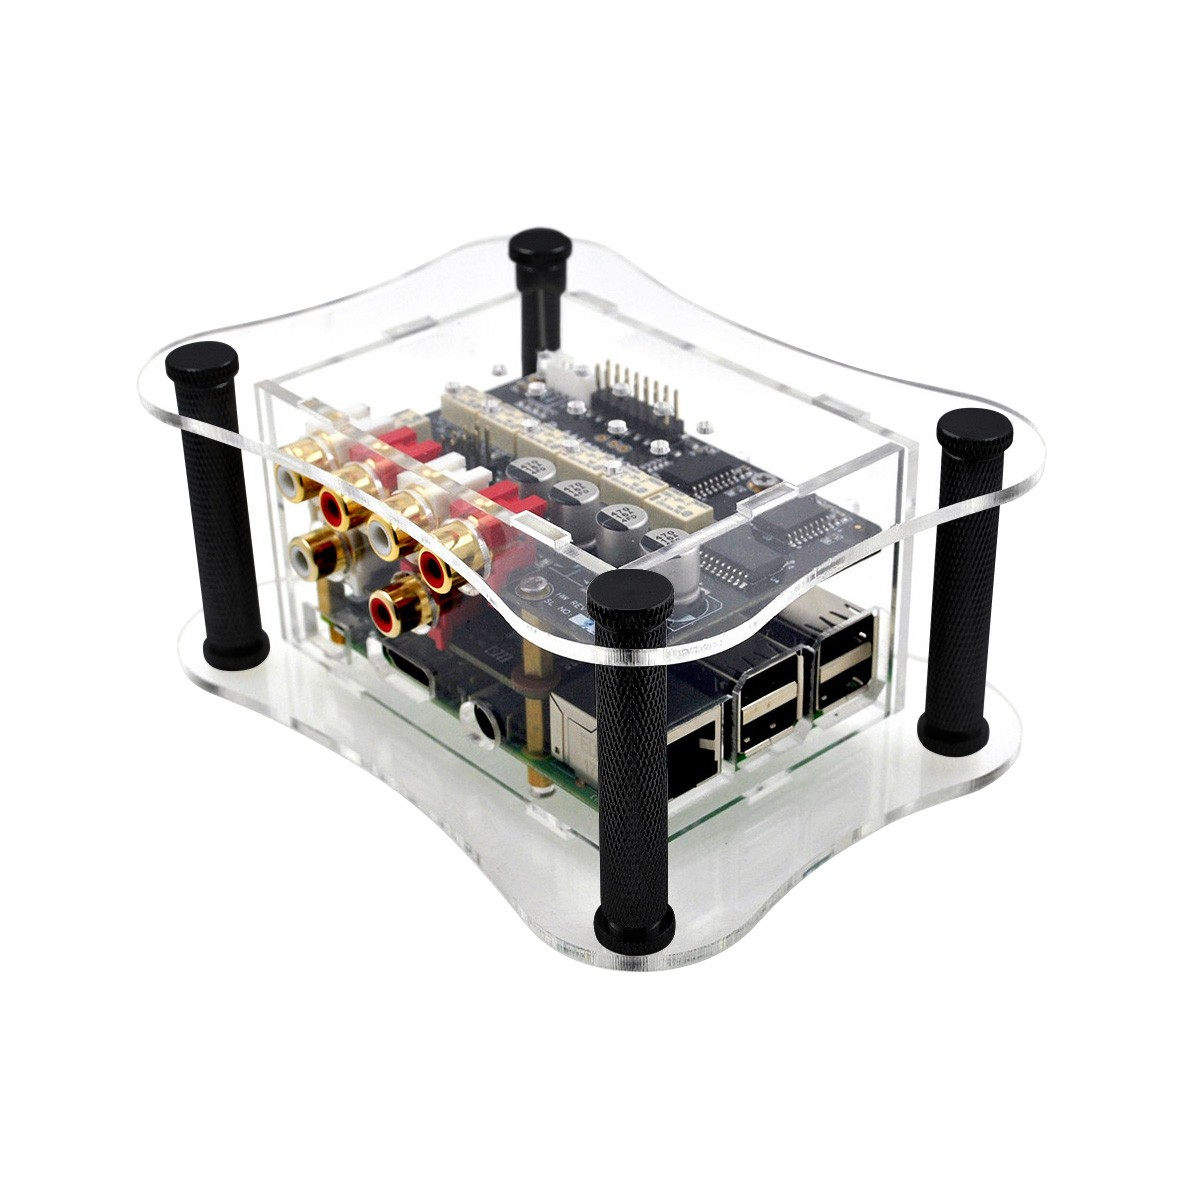 ALLO Acrylic case for Raspberry 2 / 3 + DAC Boss + Relay Attenuator Transparent